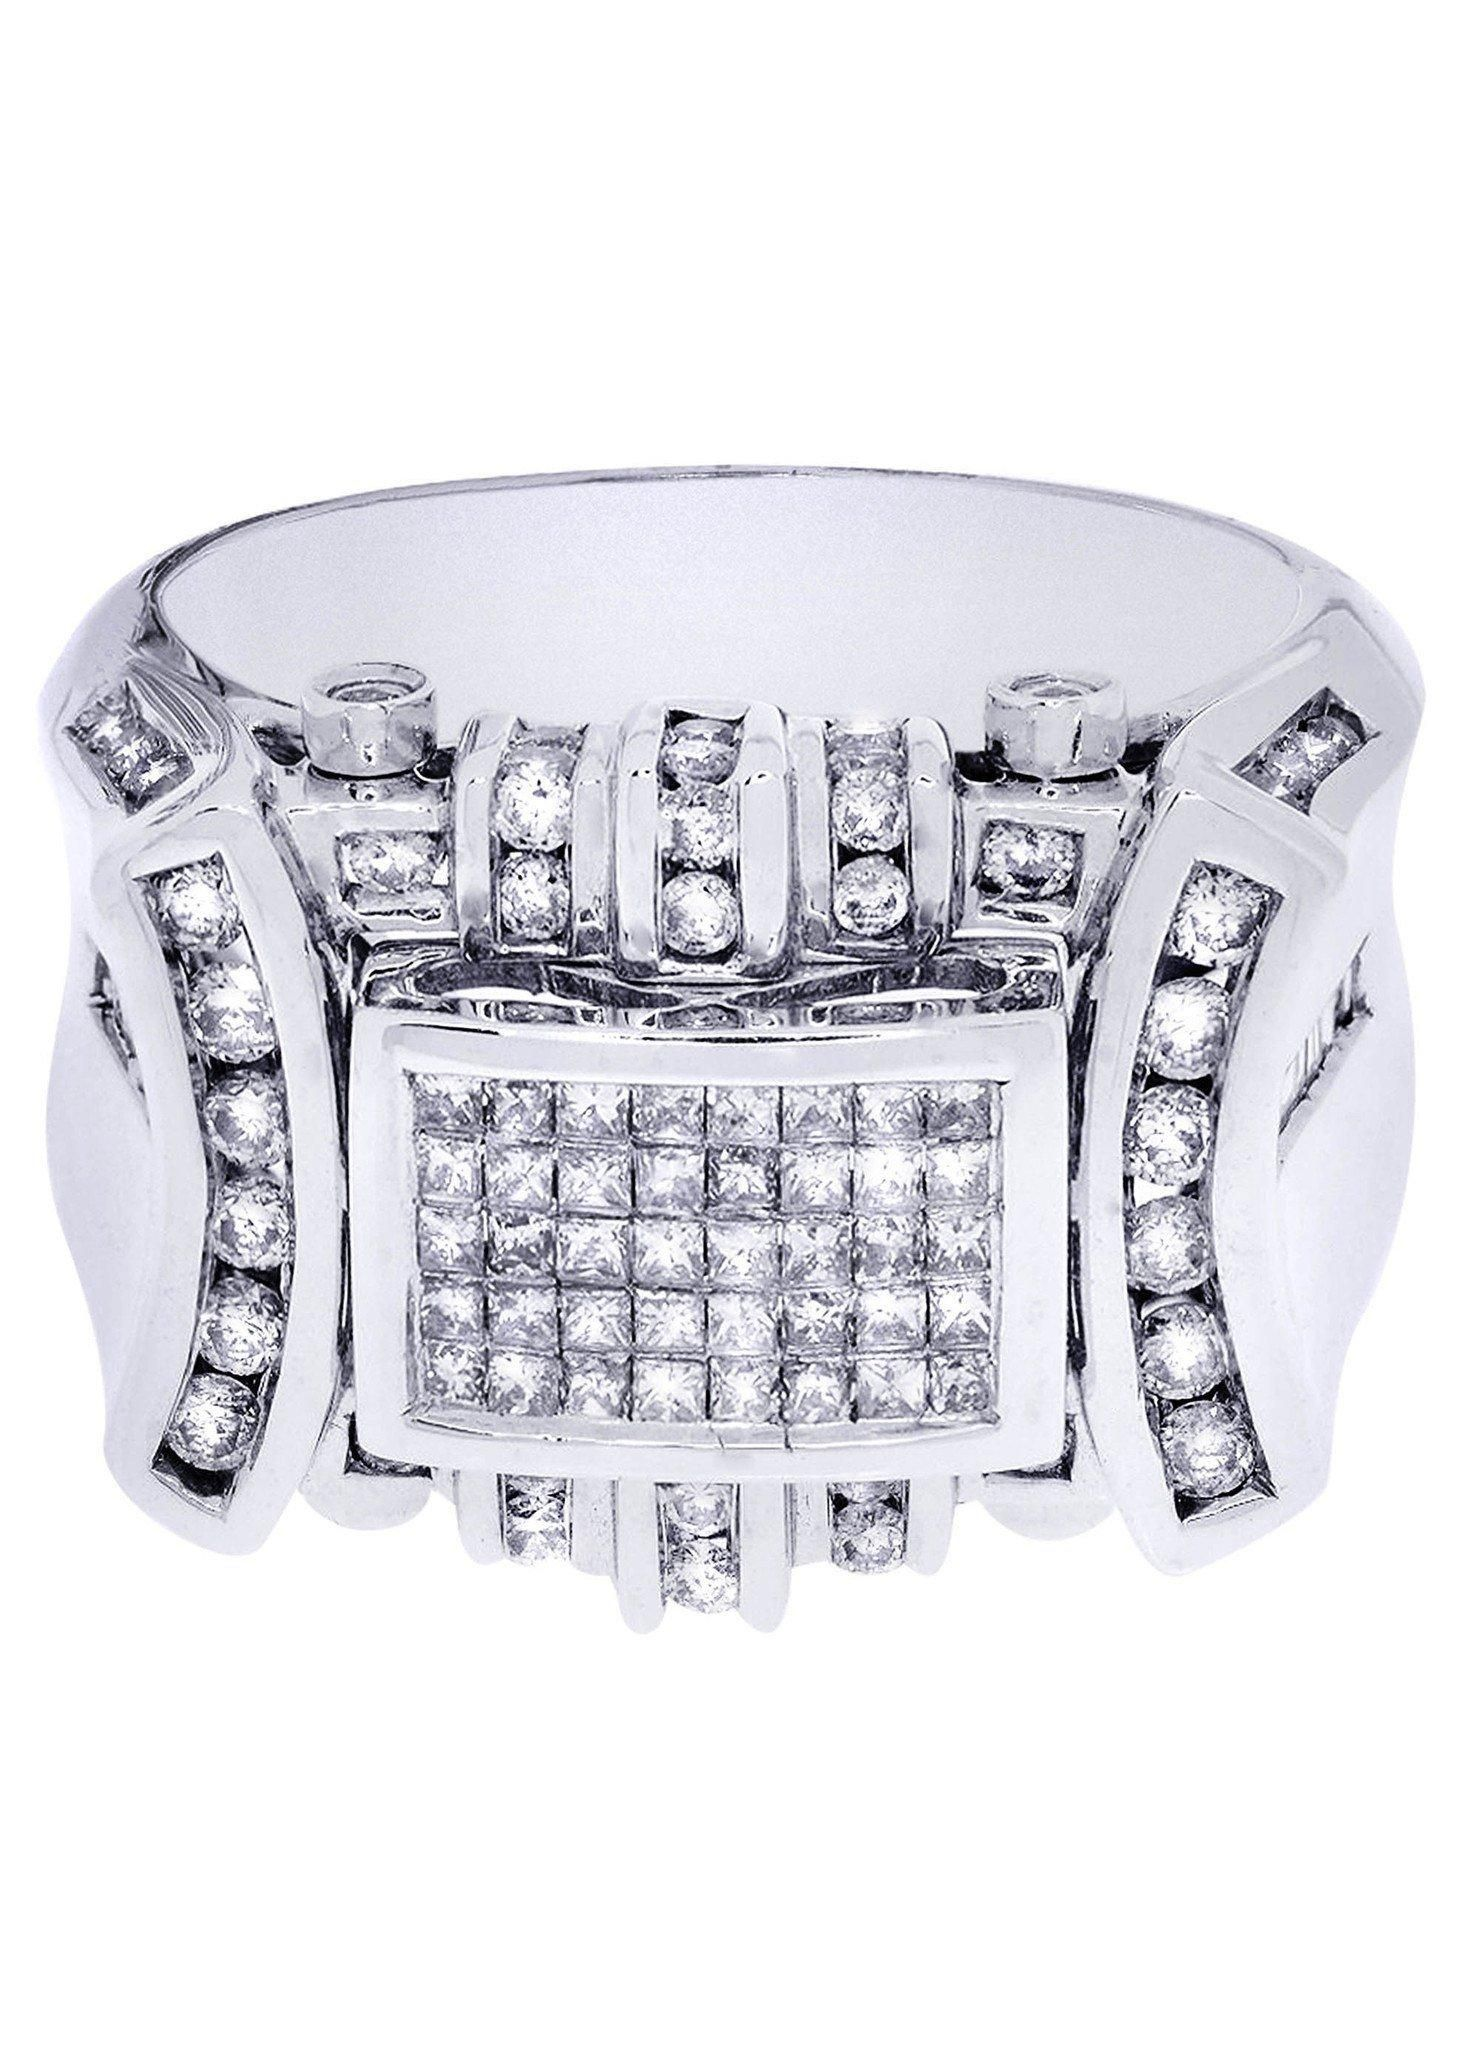 Frostnyc frost nyc mens diamond ring carats grams